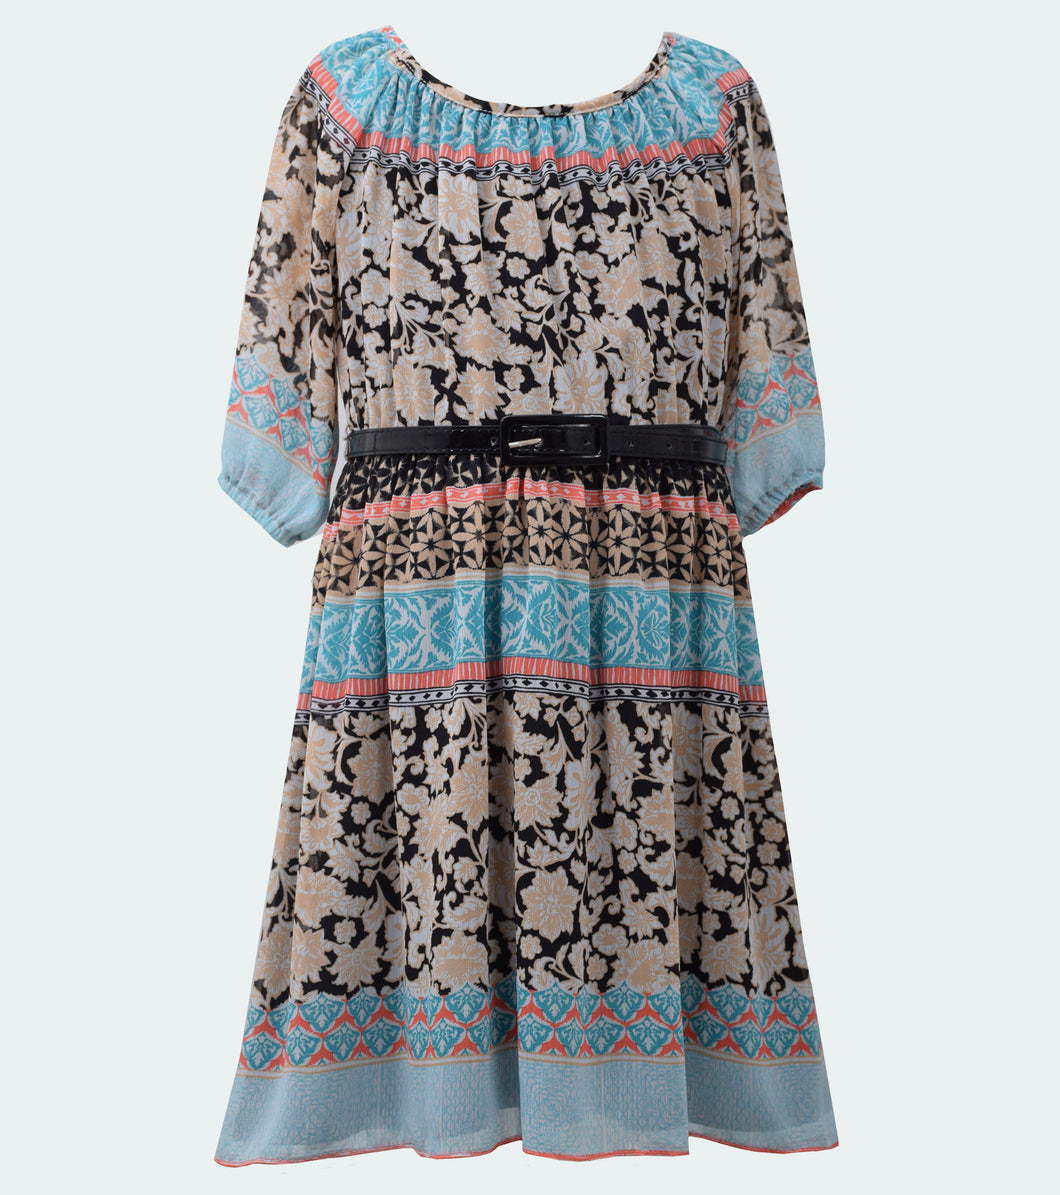 Bonnie Jean printed chiffon 3/4 sleeve dress with belt